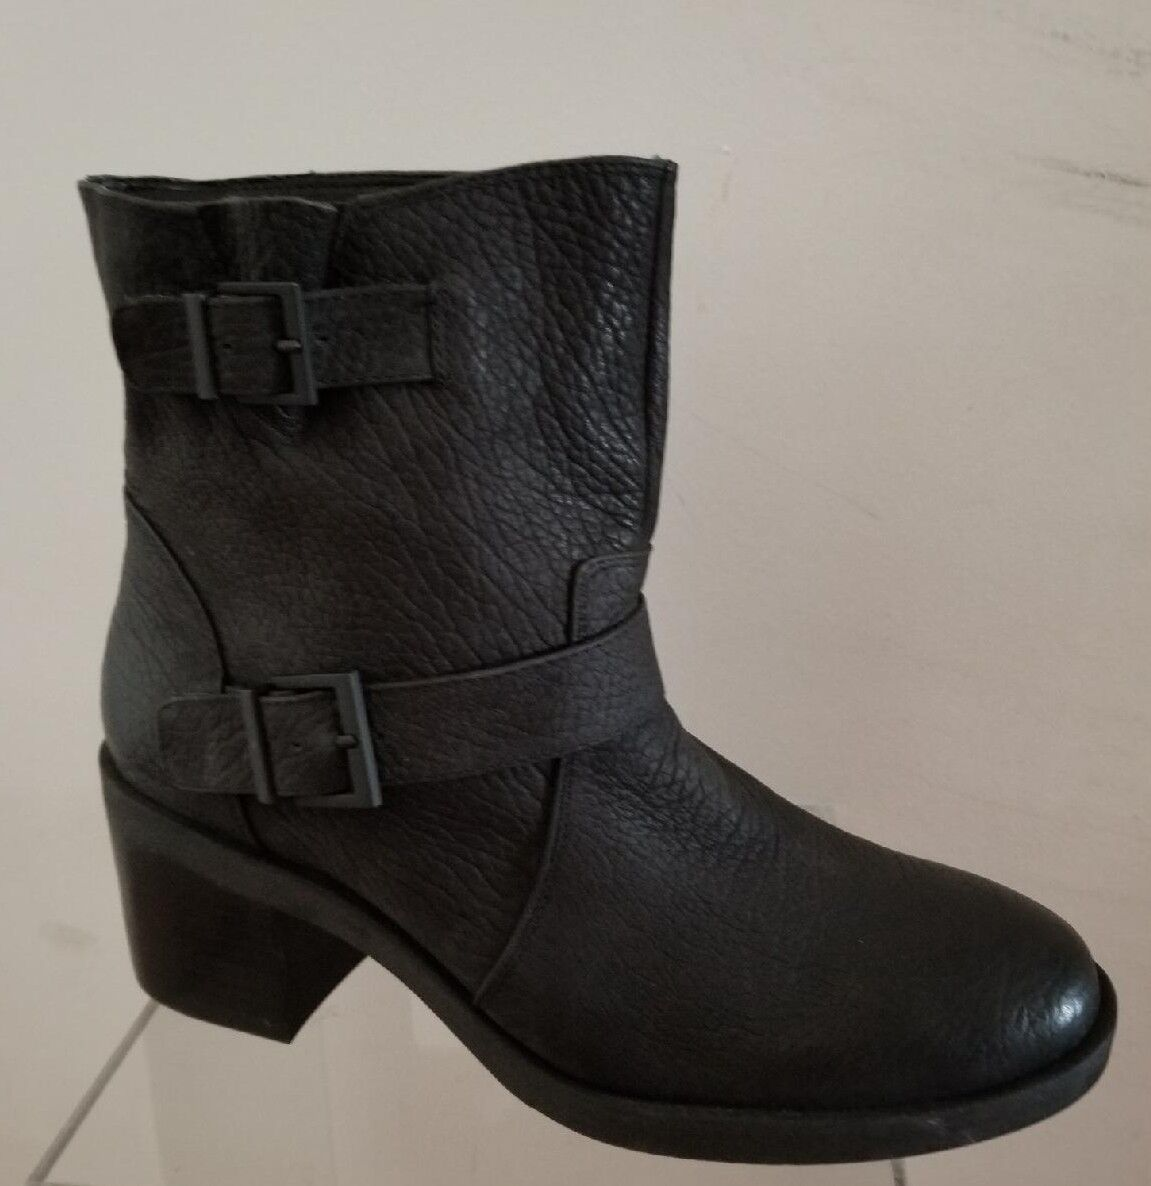 NEW KENNETH COLE REACTION  BLACK LEATHER ANKLE BOOTS US 10M